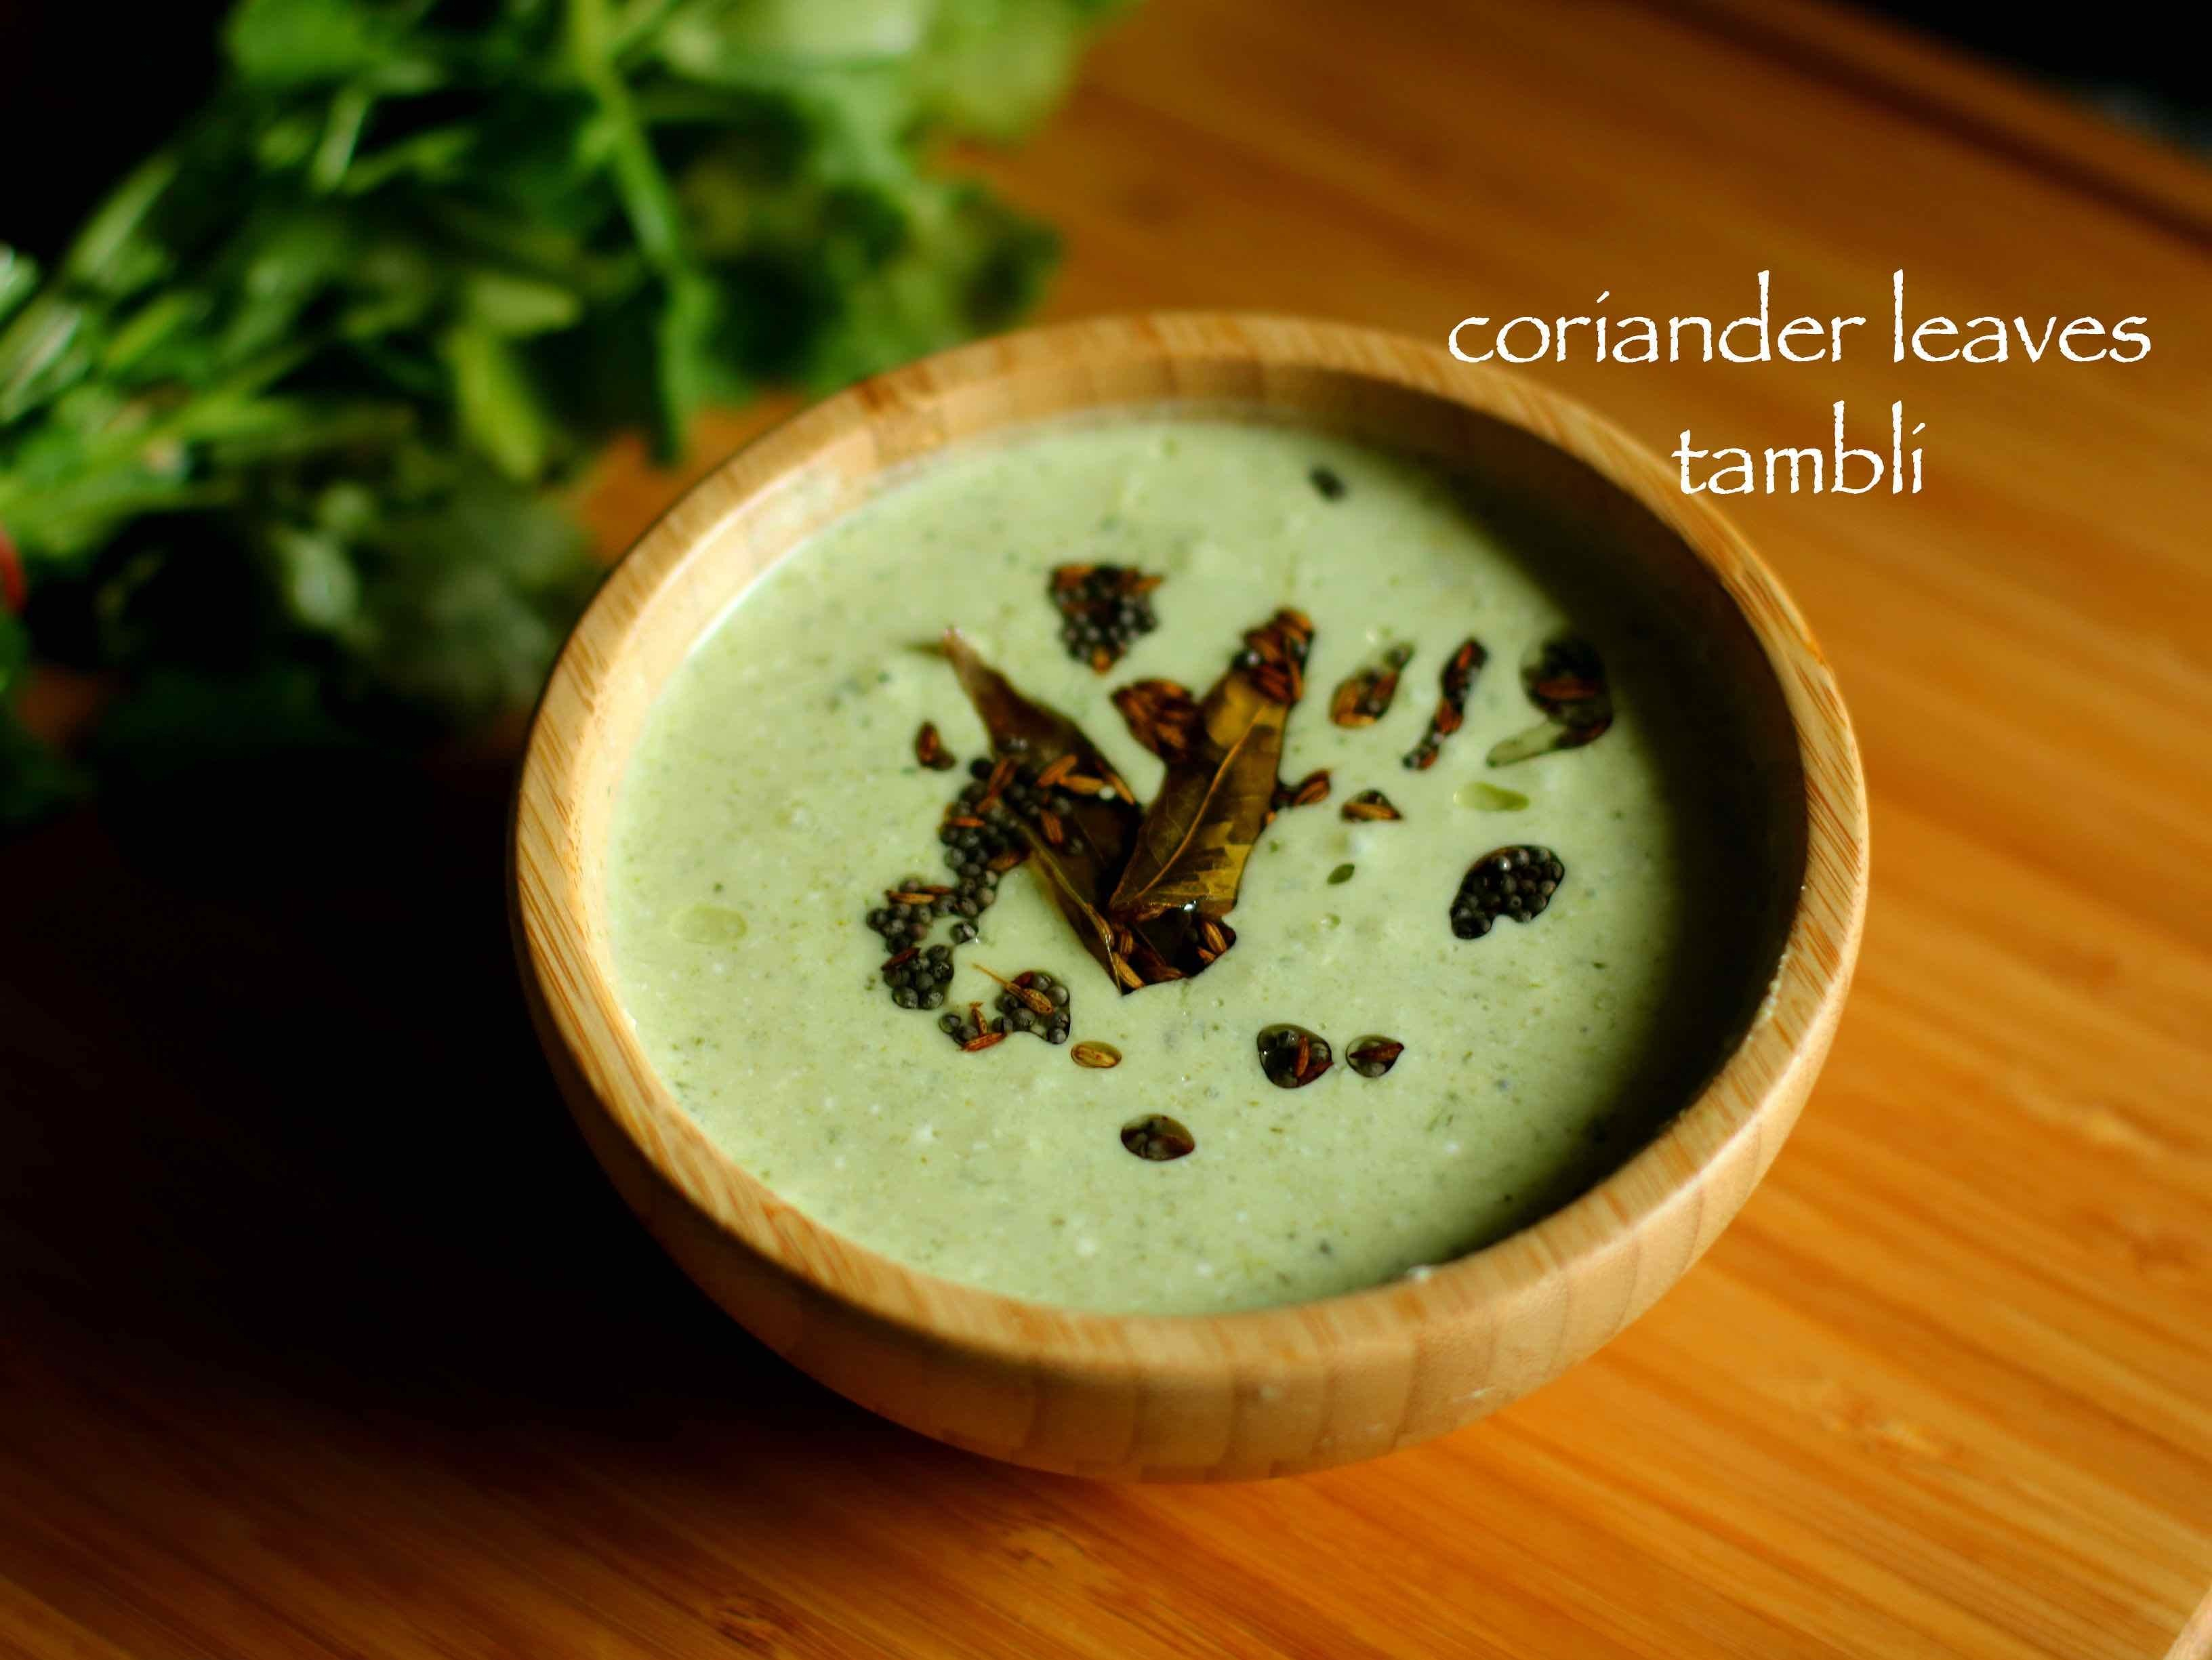 coriander leaves tambli recipe | kottambari soppu tambuli recipe